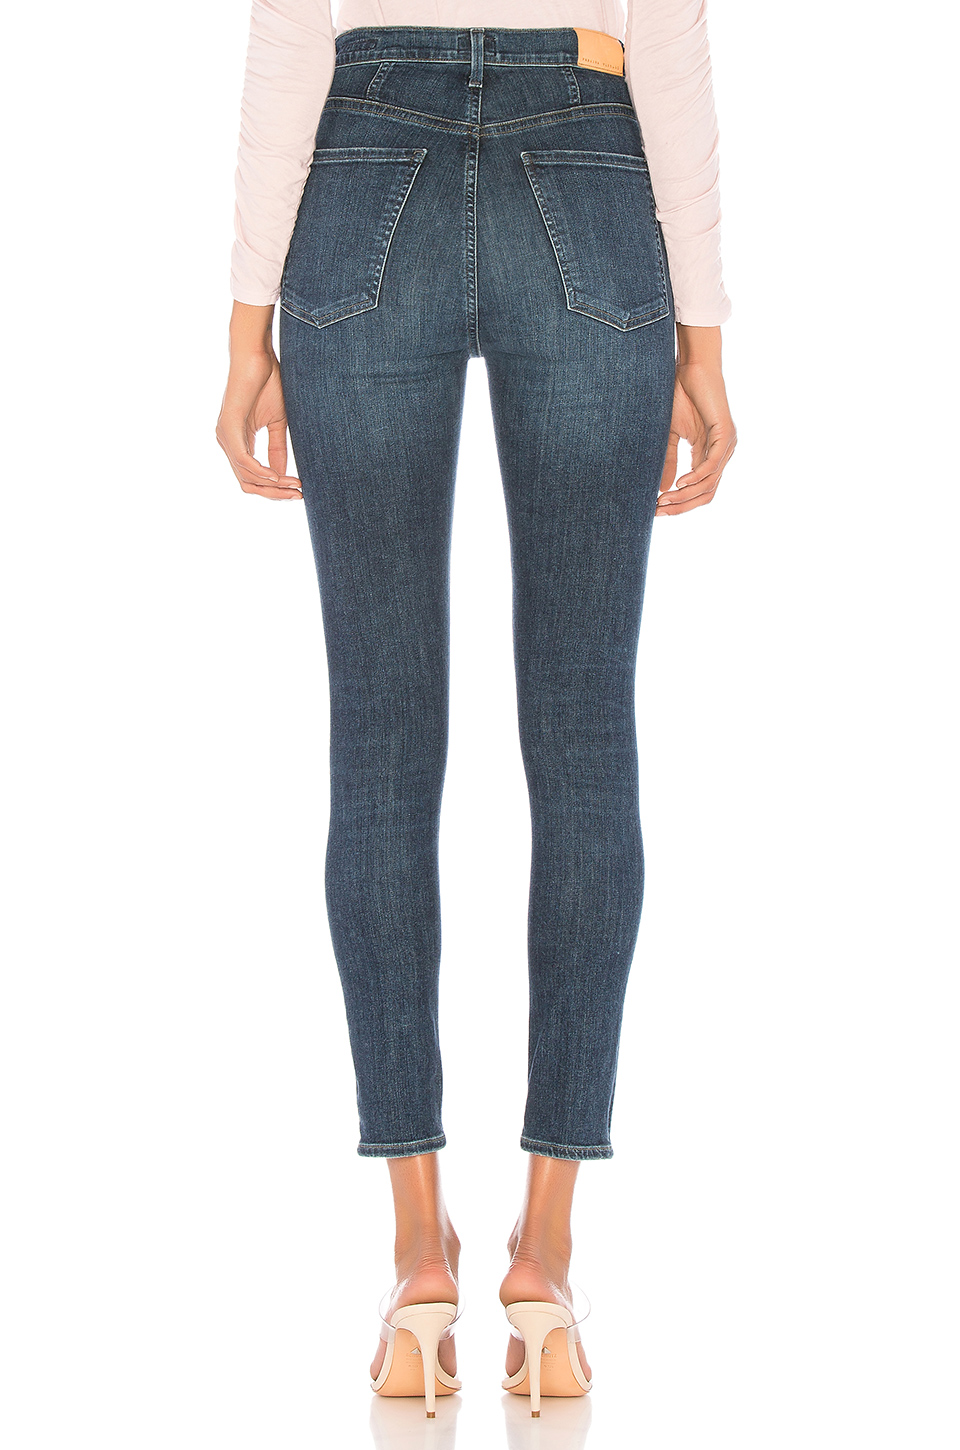 Citizens of Humanity Chrissy Sculpt Uber High Rise Skinny